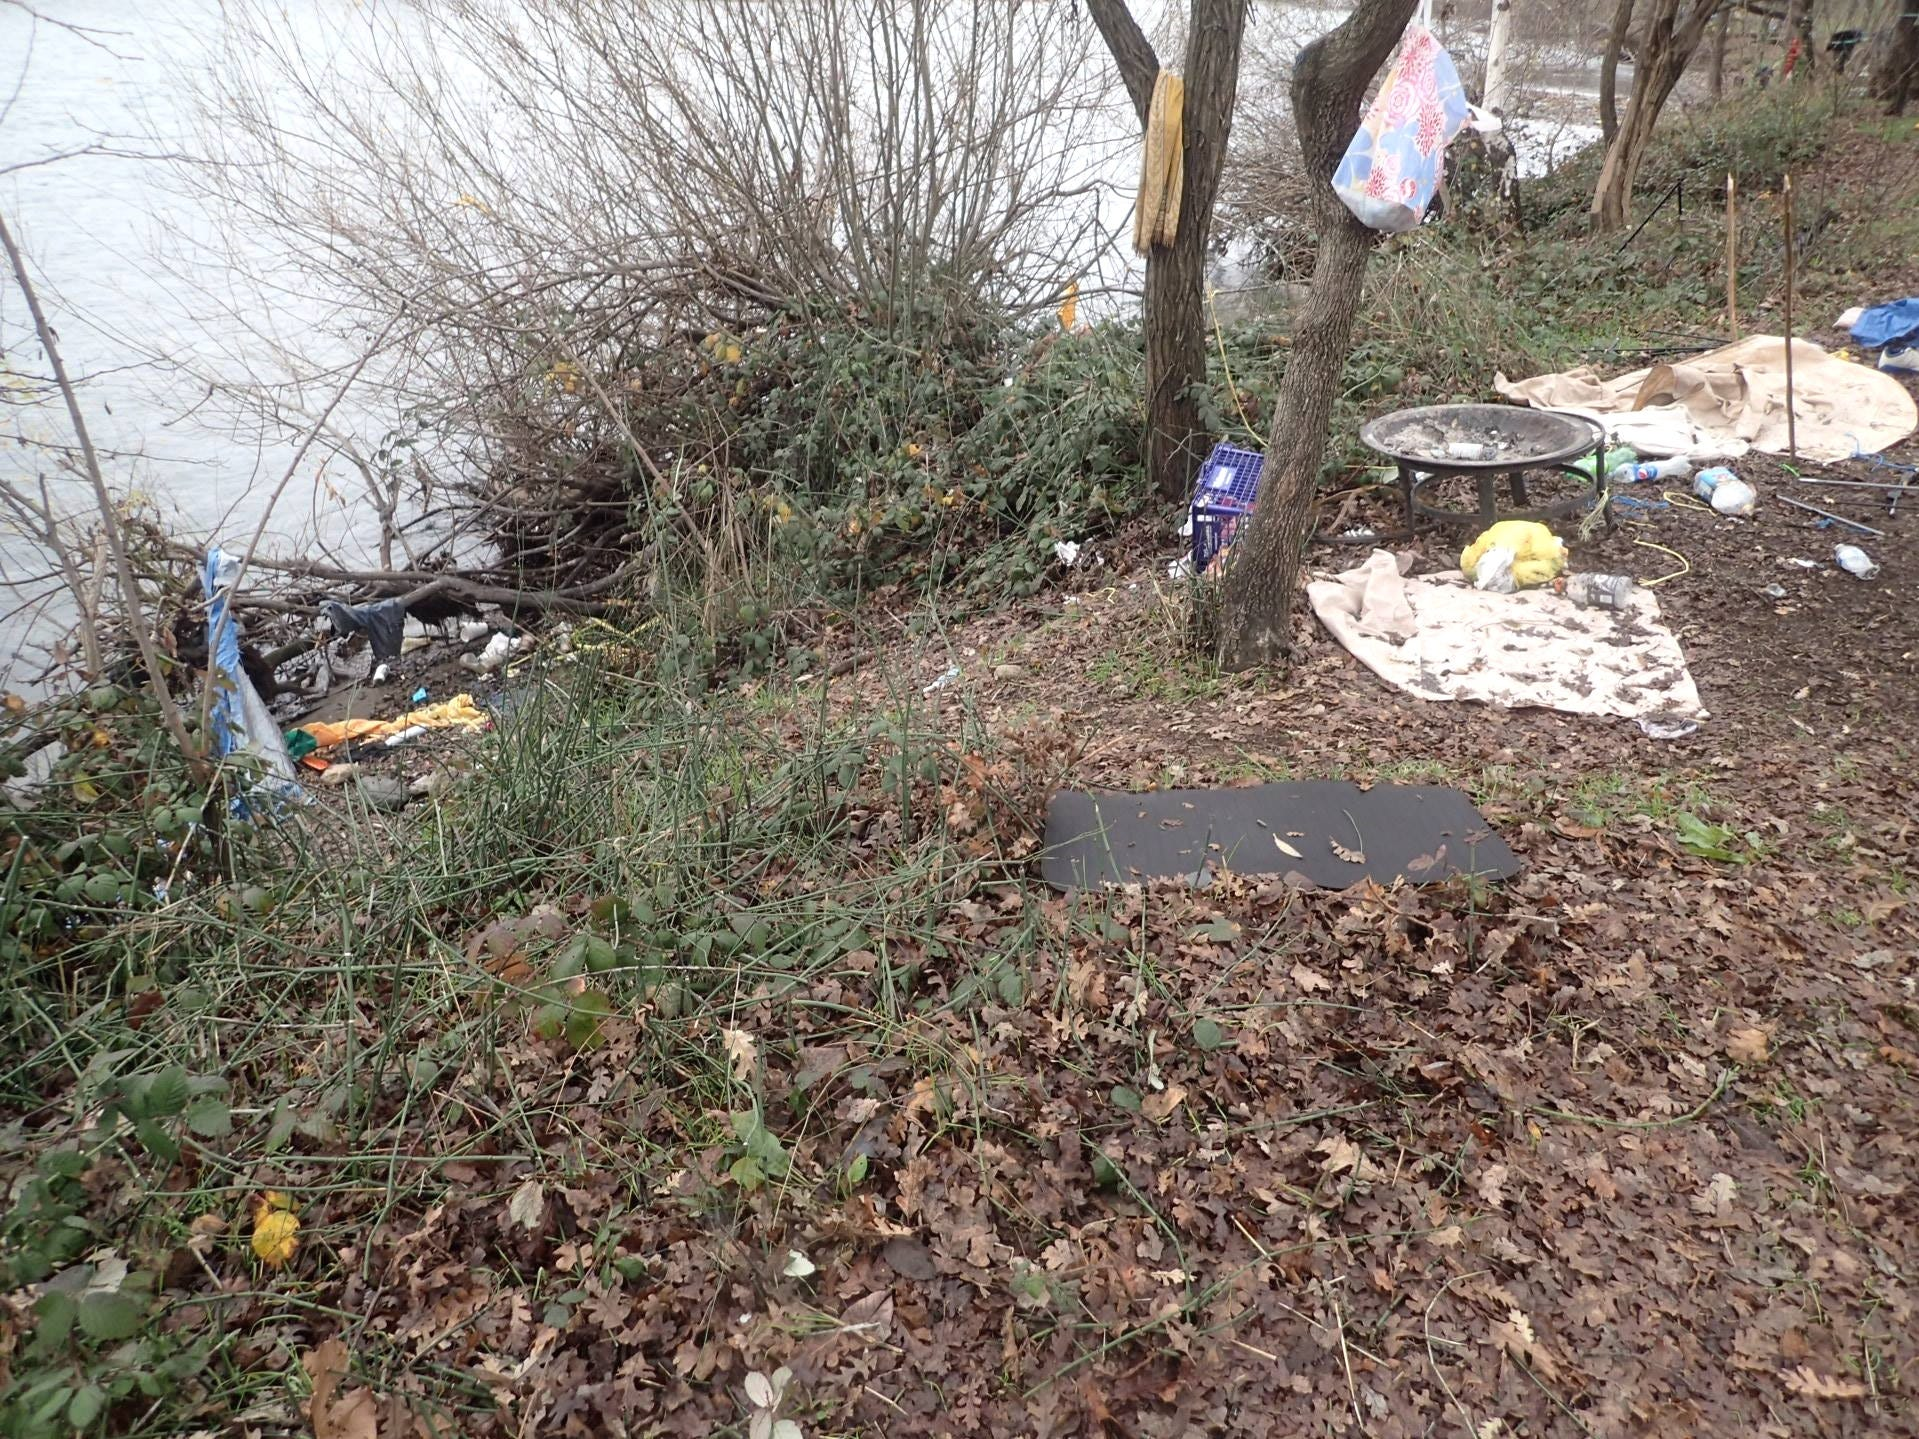 Trash left behind by homeless campers was removed Jan. 8, 2019, in a camp cleanup operation along the Sacramento River in Redding.